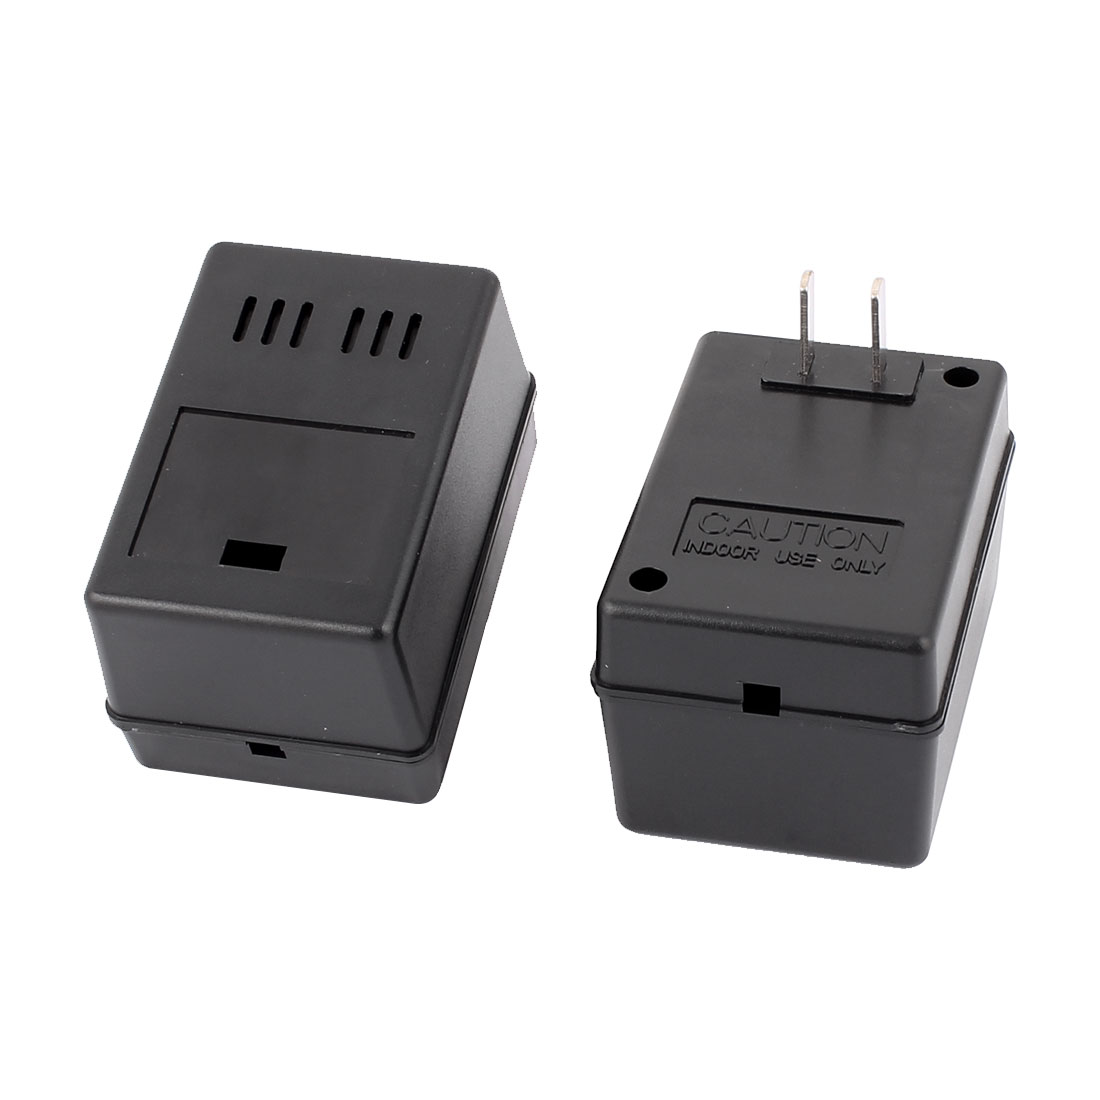 2 Pcs 83mm x 57mm x 50mm US Plug Plastic Enclosure Junction Box Black